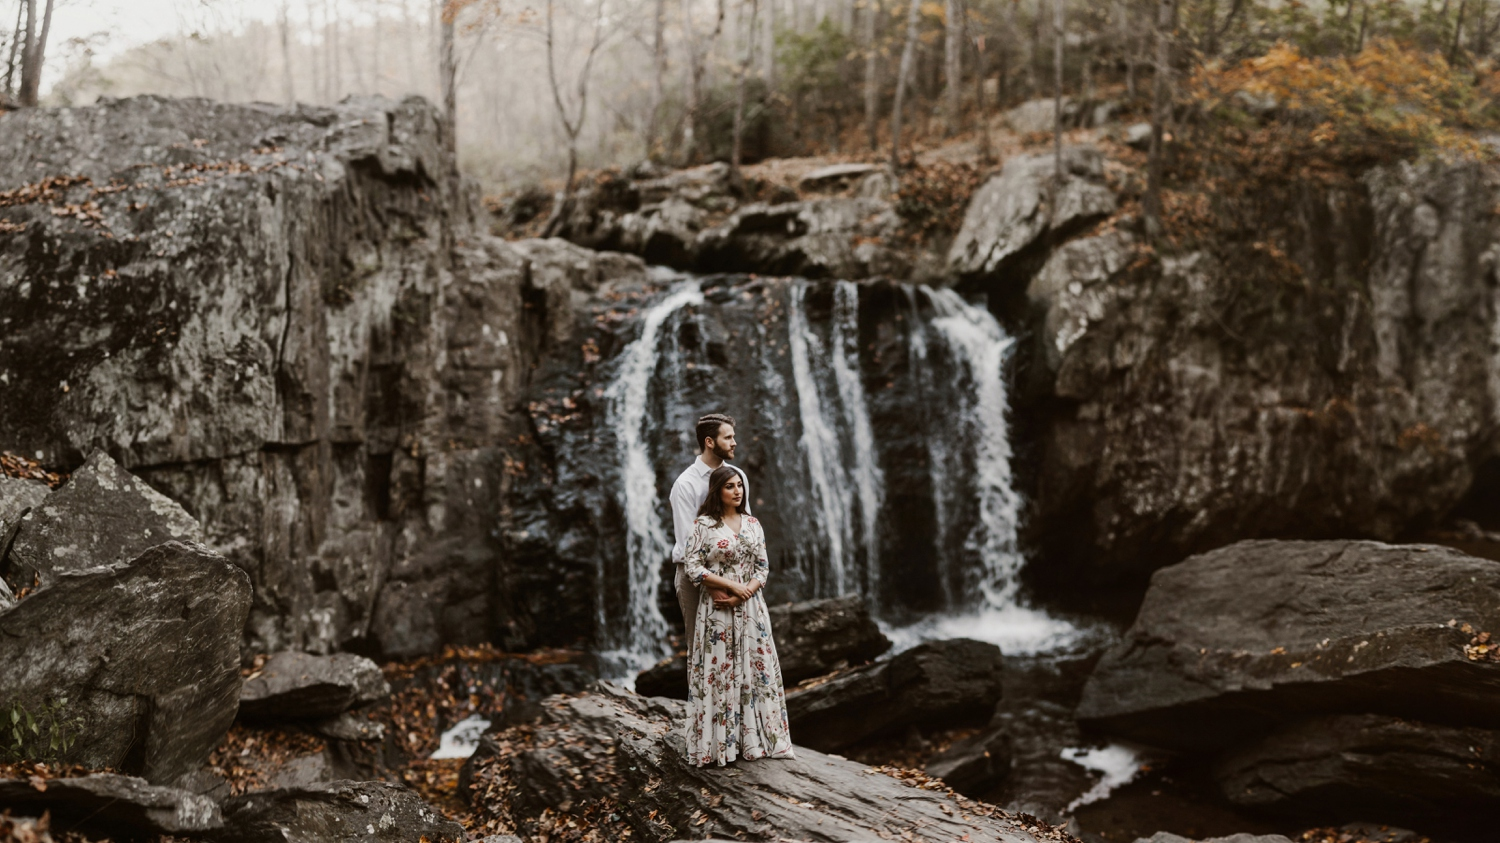 sundas-and-scott-panfinal-_baltimore-washington-d-c-waterfall-kilgore-engagement-session-maxi-dress-earthy-maryland-wedding-photographer-kate-ann-photography-photo